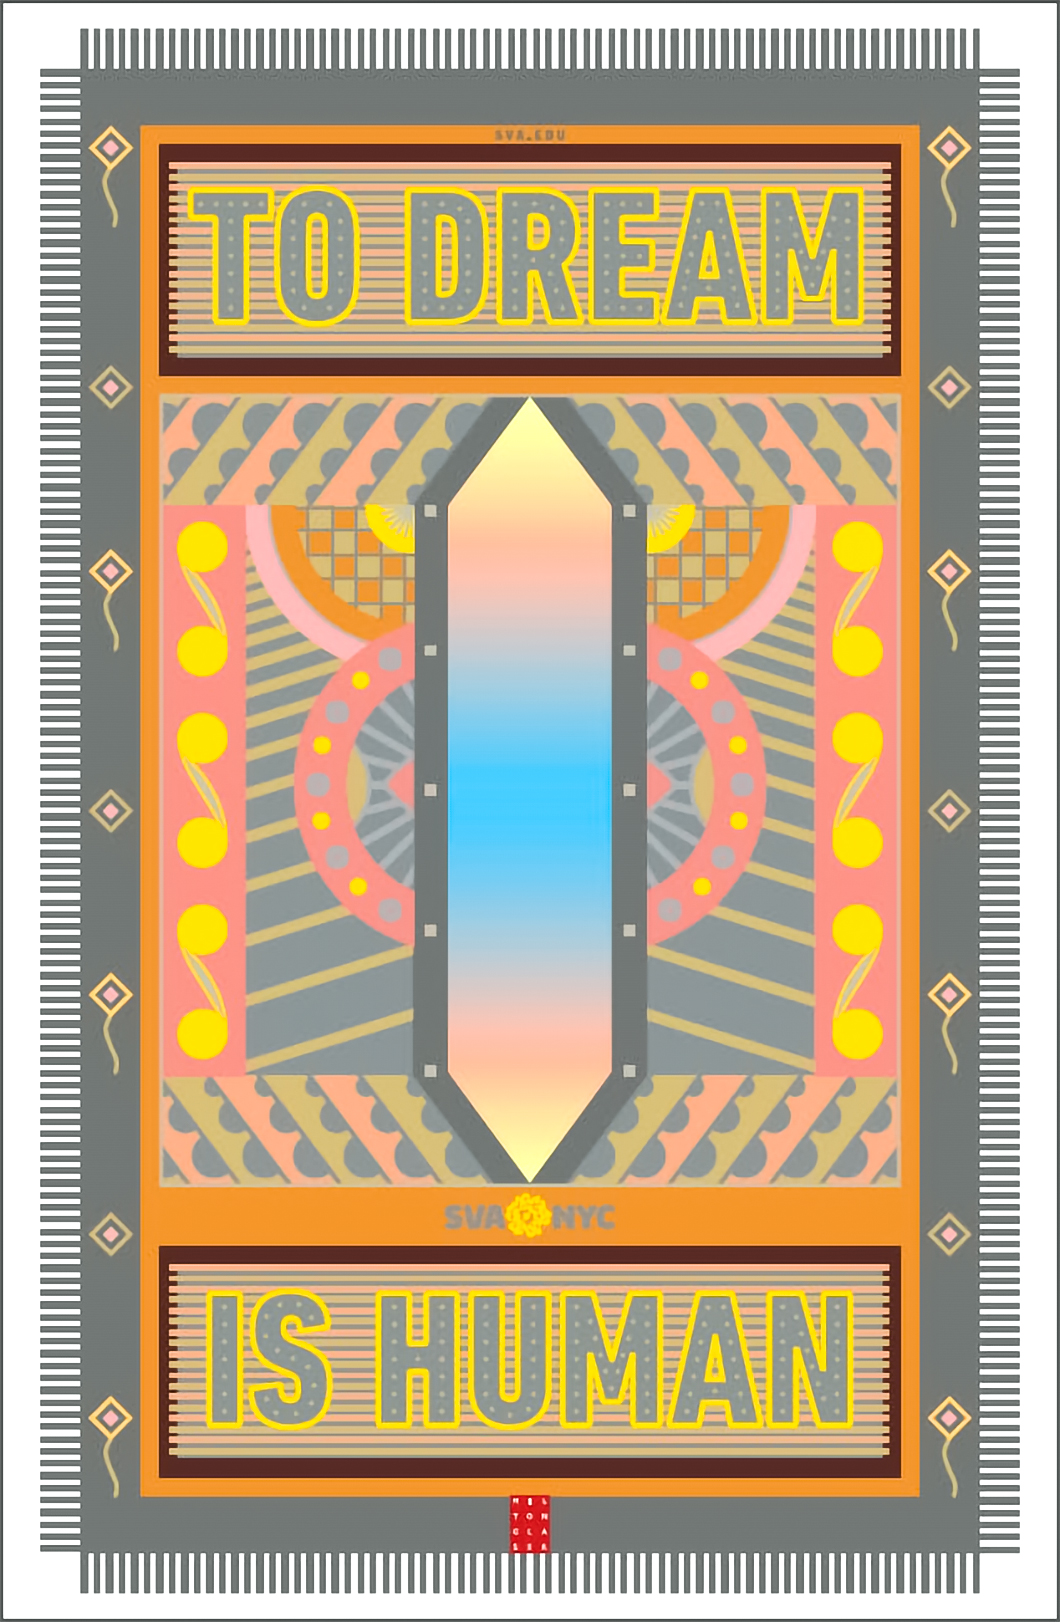 Milton Glaser 1929-2020 Poster To Dream is Human